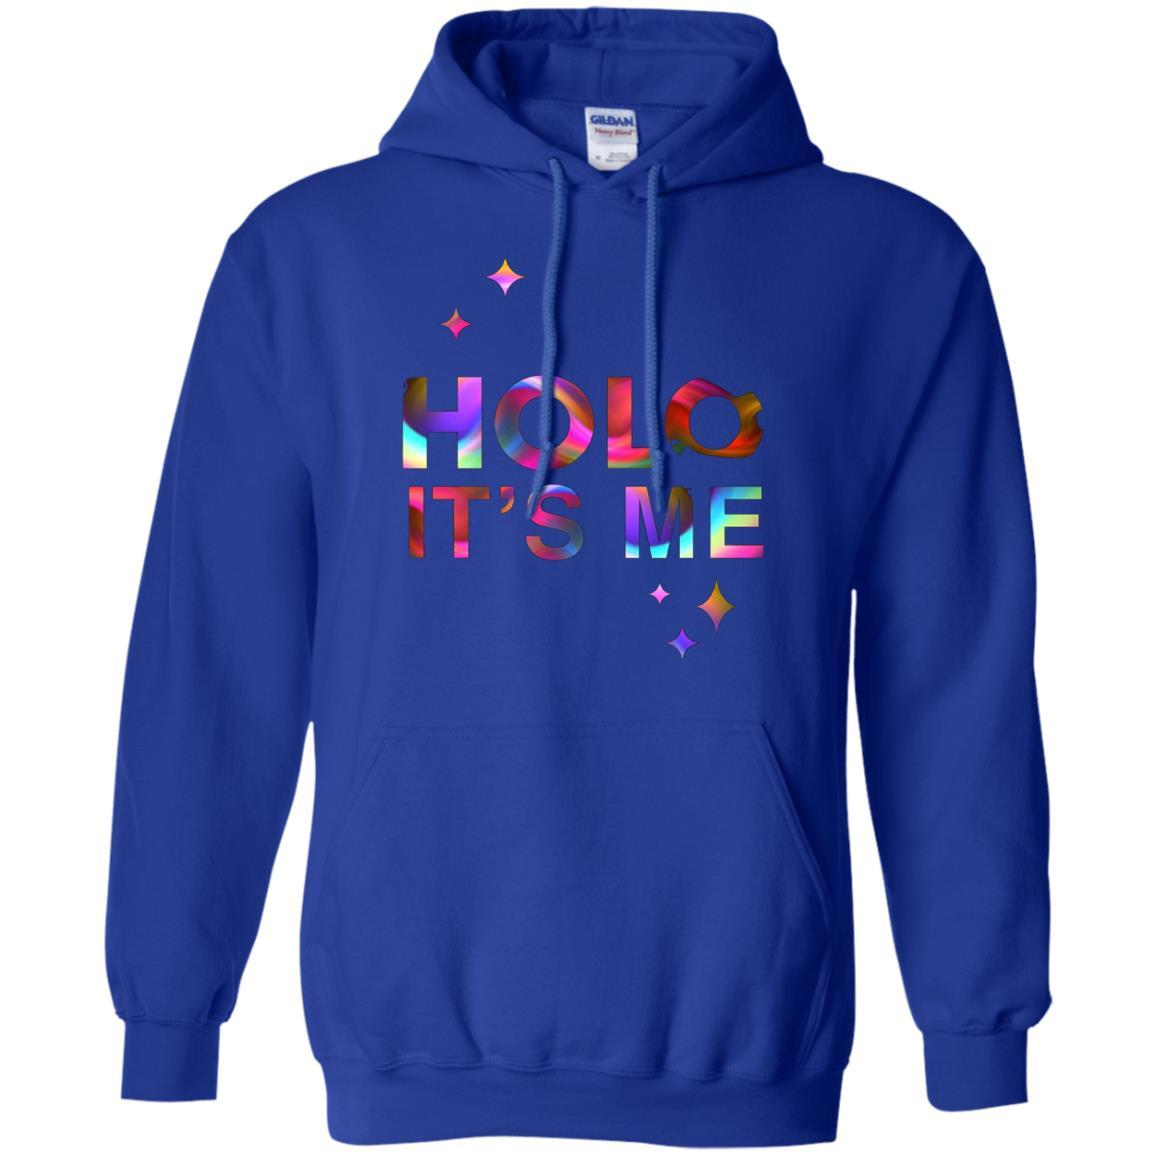 Holo It's Me - Pullover Hoodie Royal / 5XL